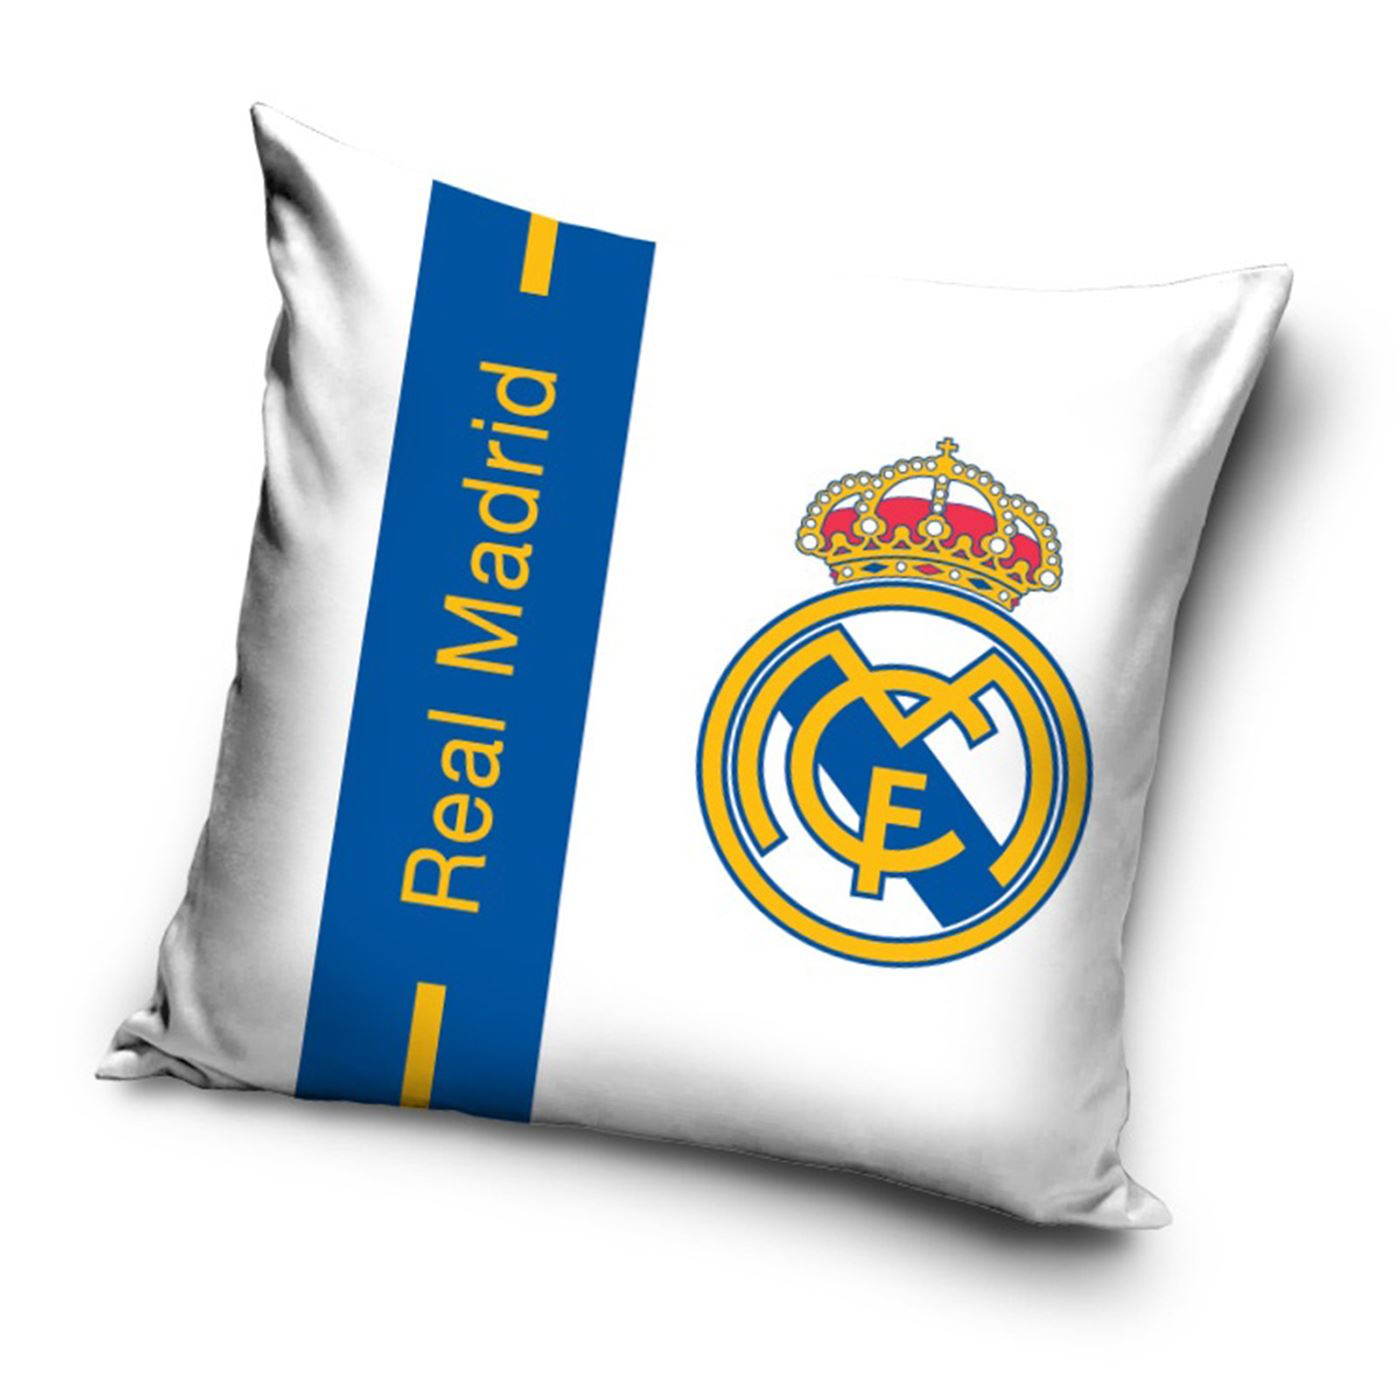 FOOTBALL TEAM OFFICIAL CUSHIONS   ARSENAL, BARCELONA, REAL MADRID